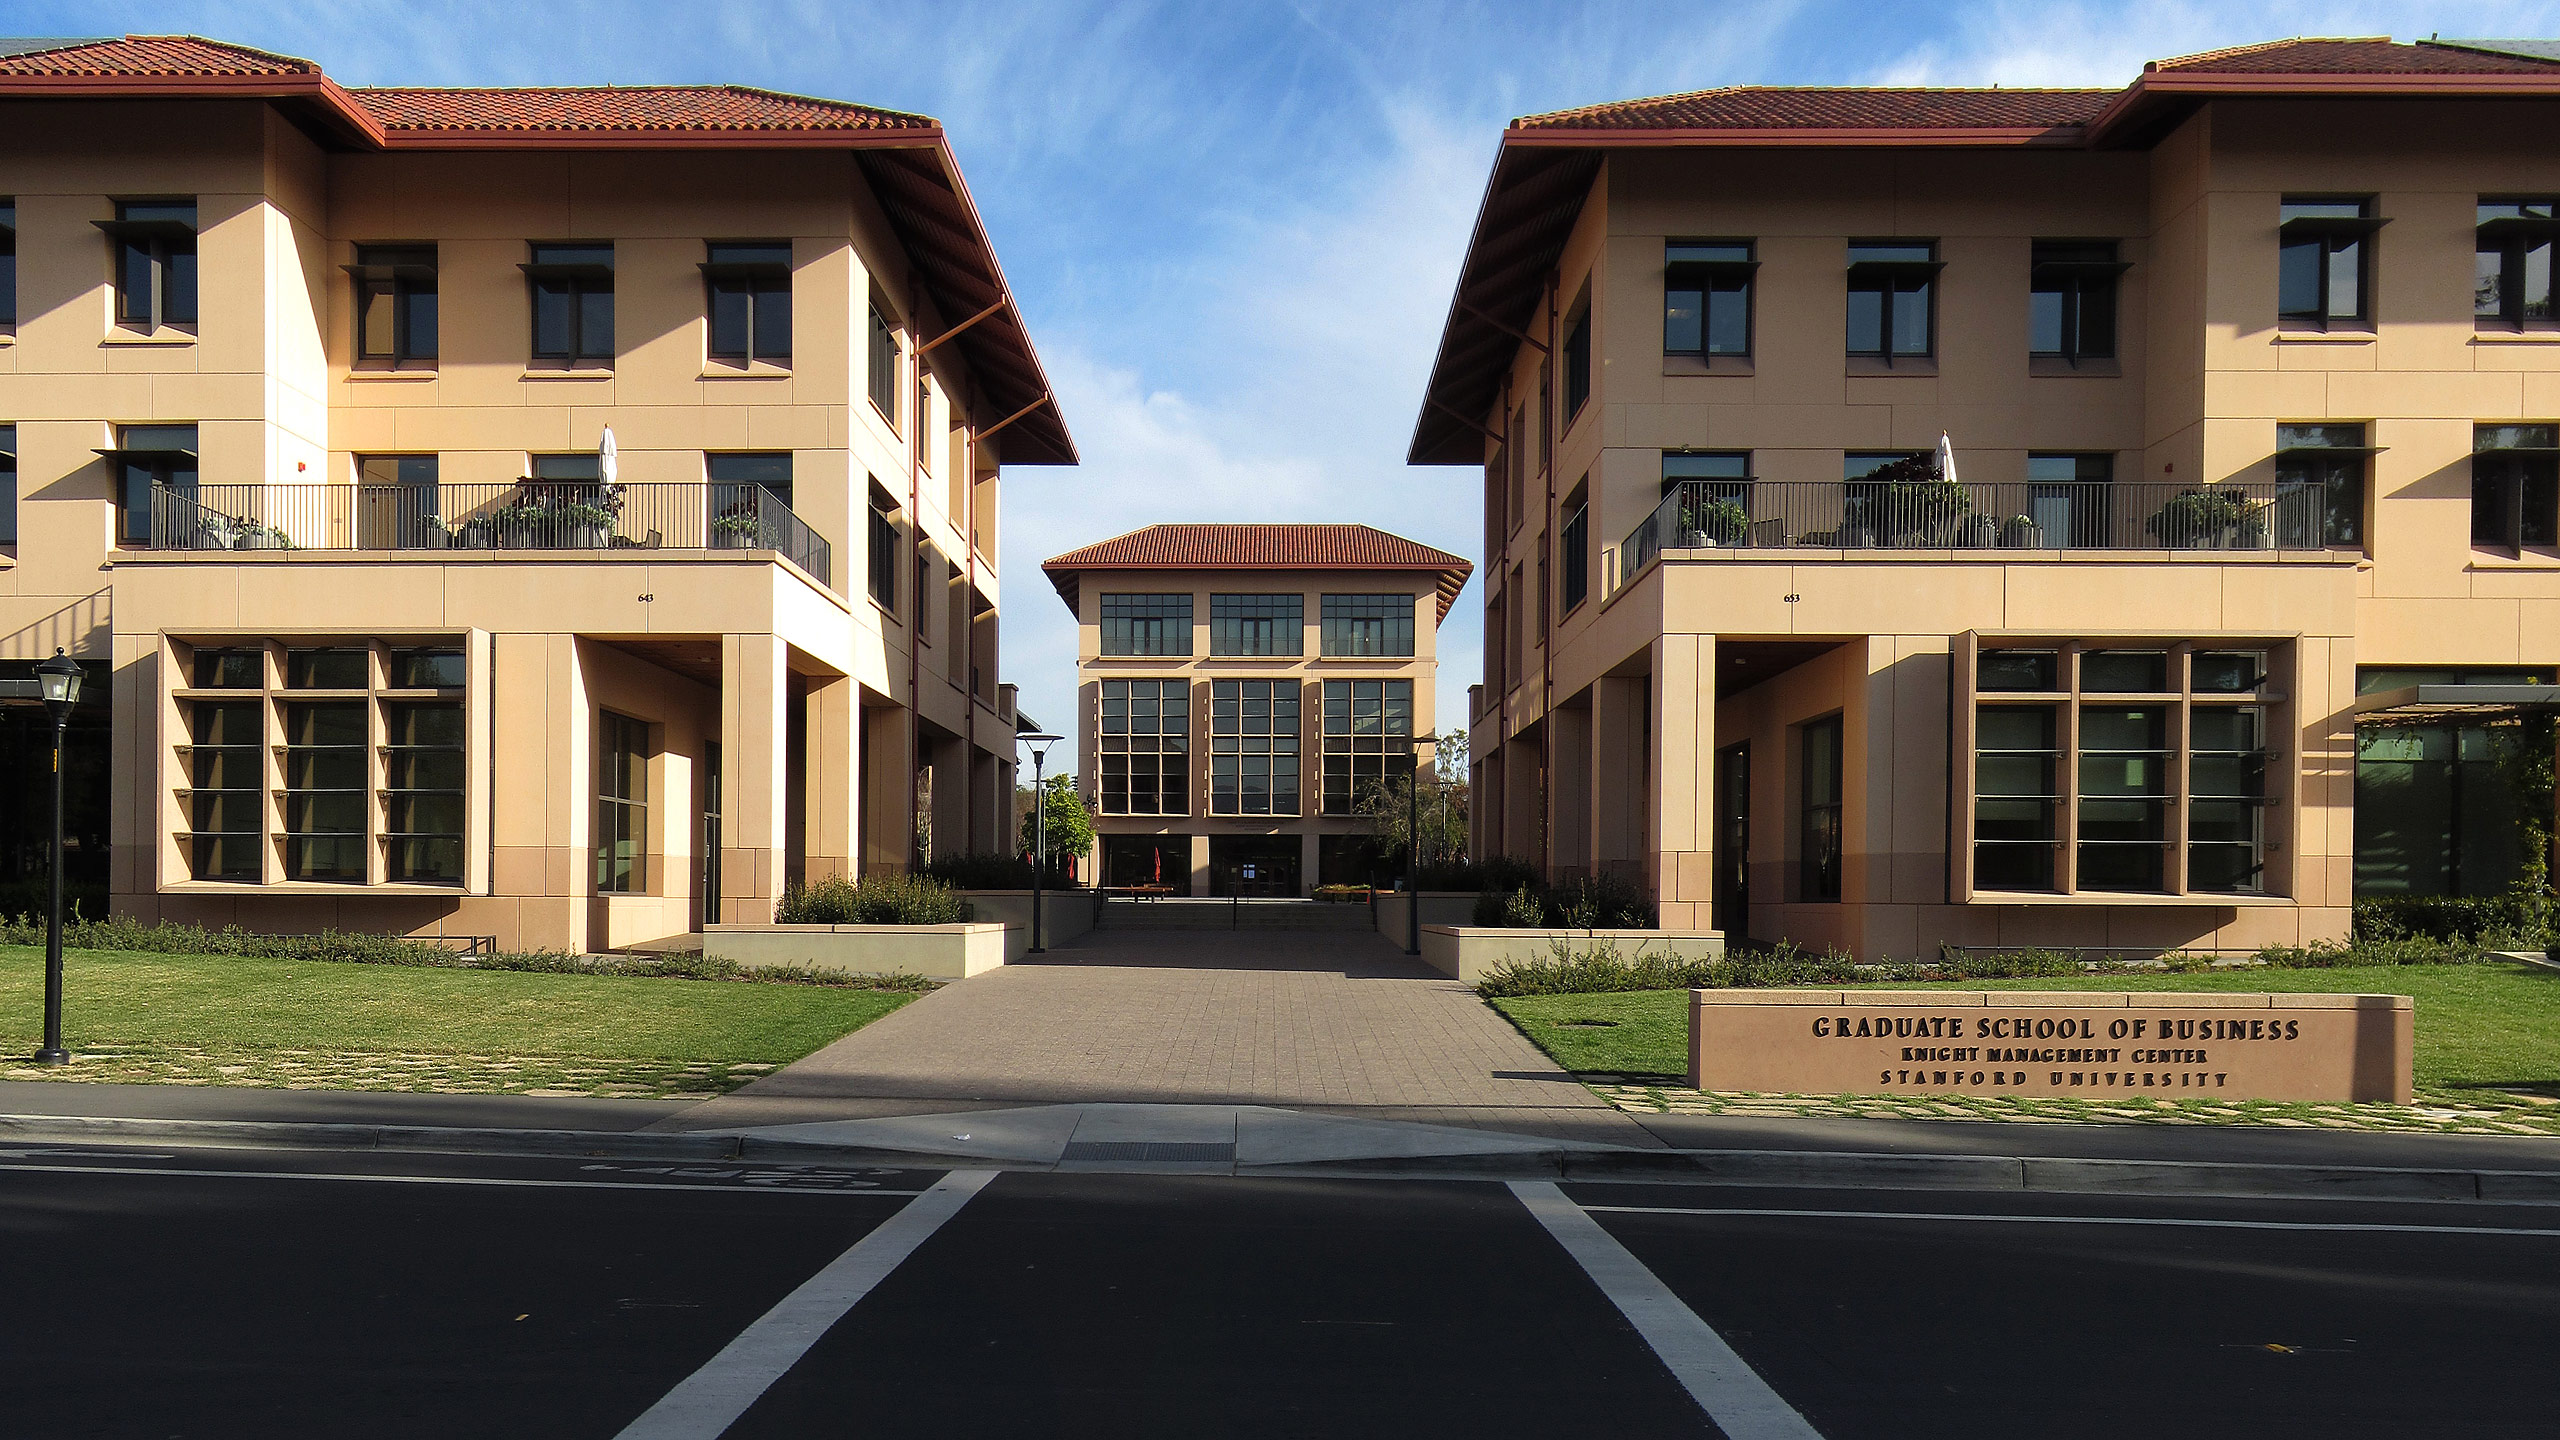 Knight Management Center, Graduate School of Business – Stanford University / image 8